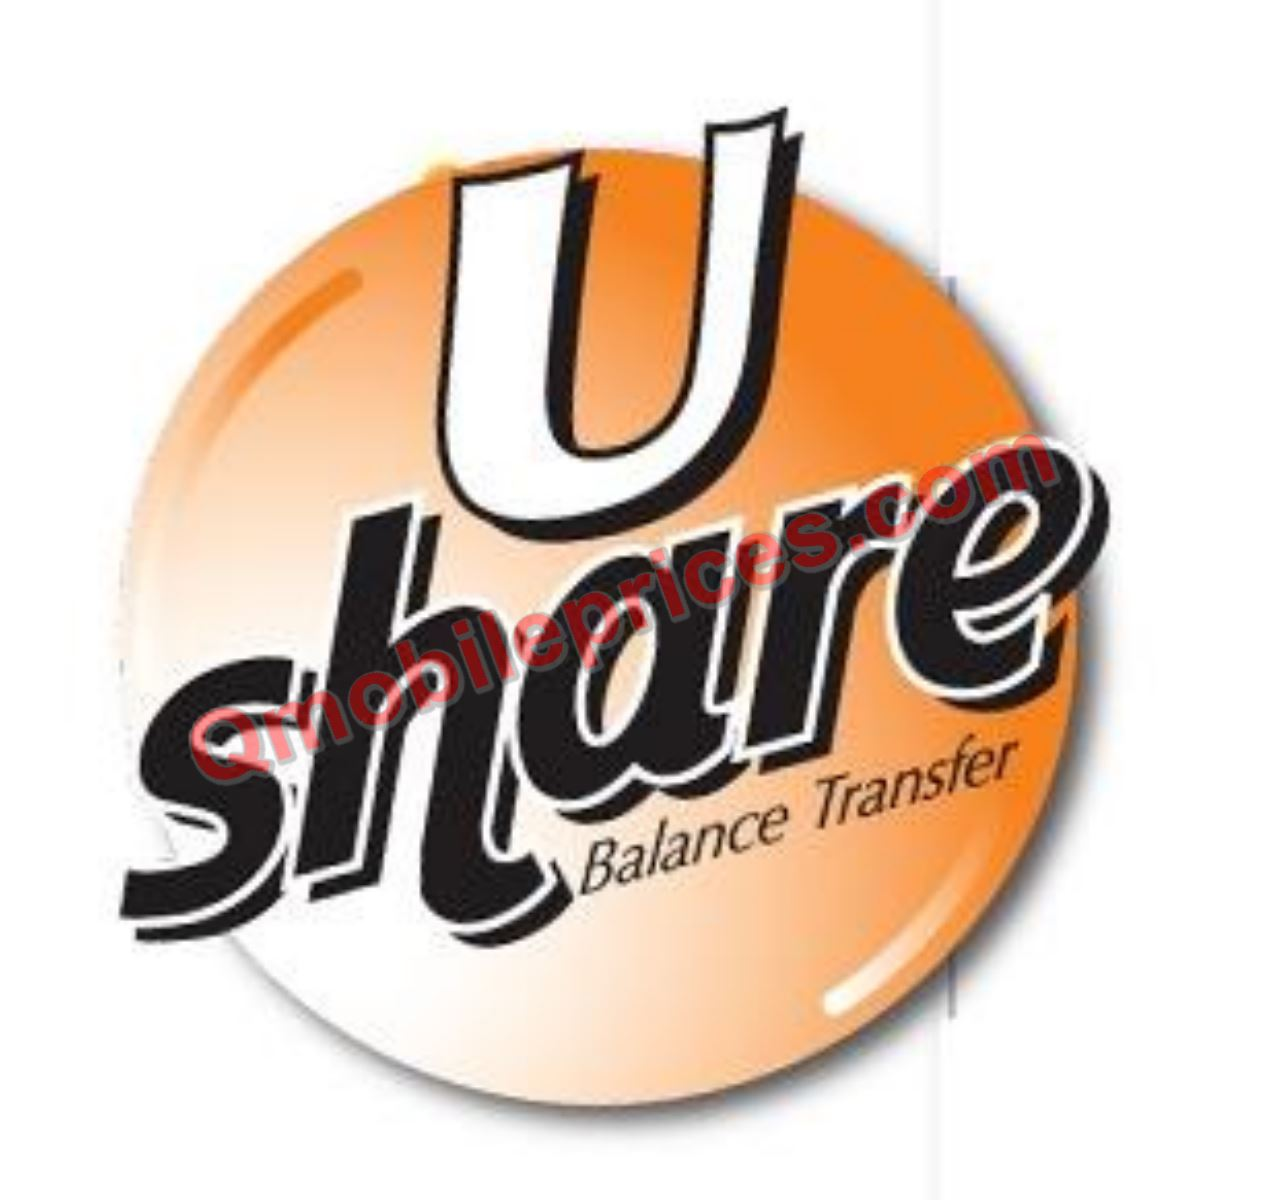 how to share balance in ufone - code